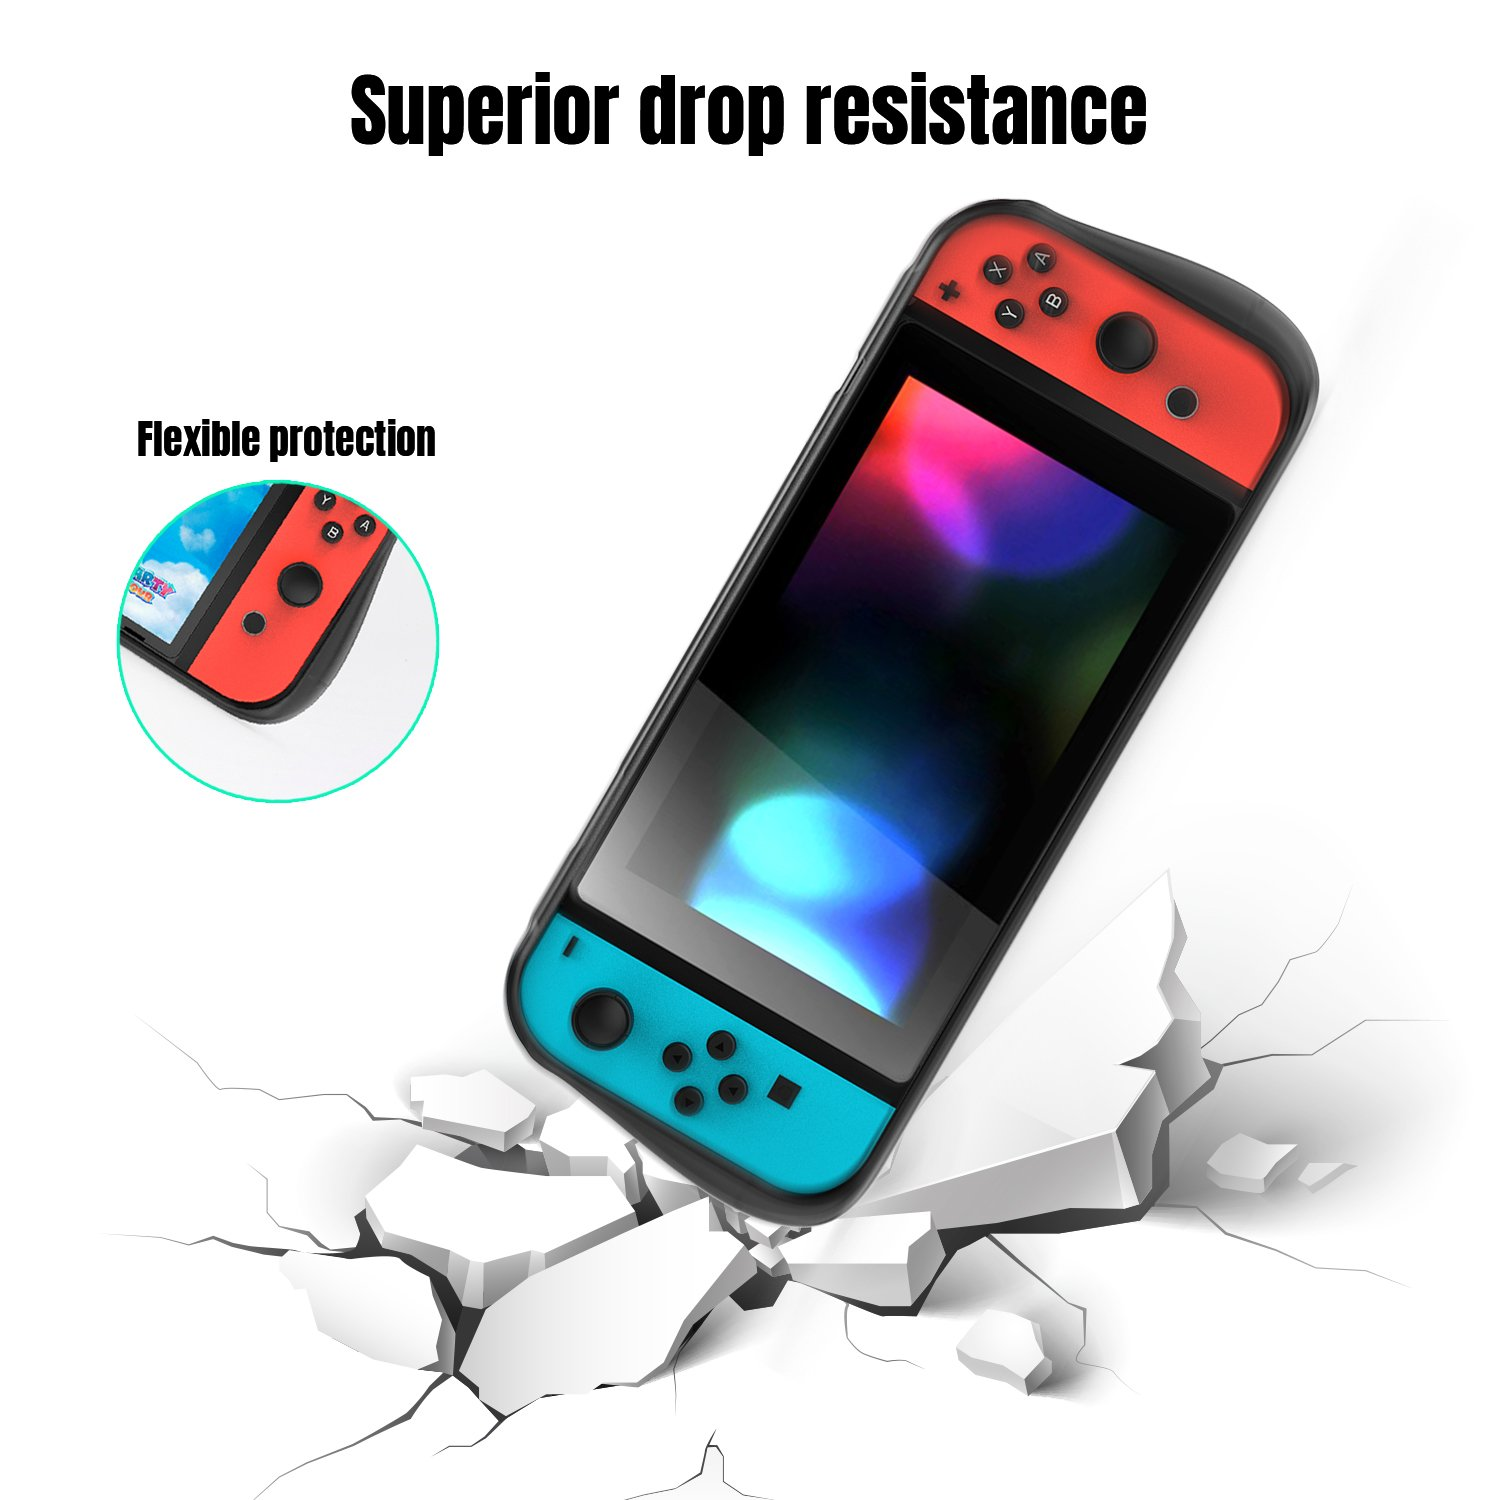 YCCTEAM Protective Case for Nintendo Switch, Heat Dissipation Comfortable Soft Silicone Gel Rubber Full Body Protection Shockproof Cover Case for Nintendo Switch in Handheld Gamepad Mode (Black)